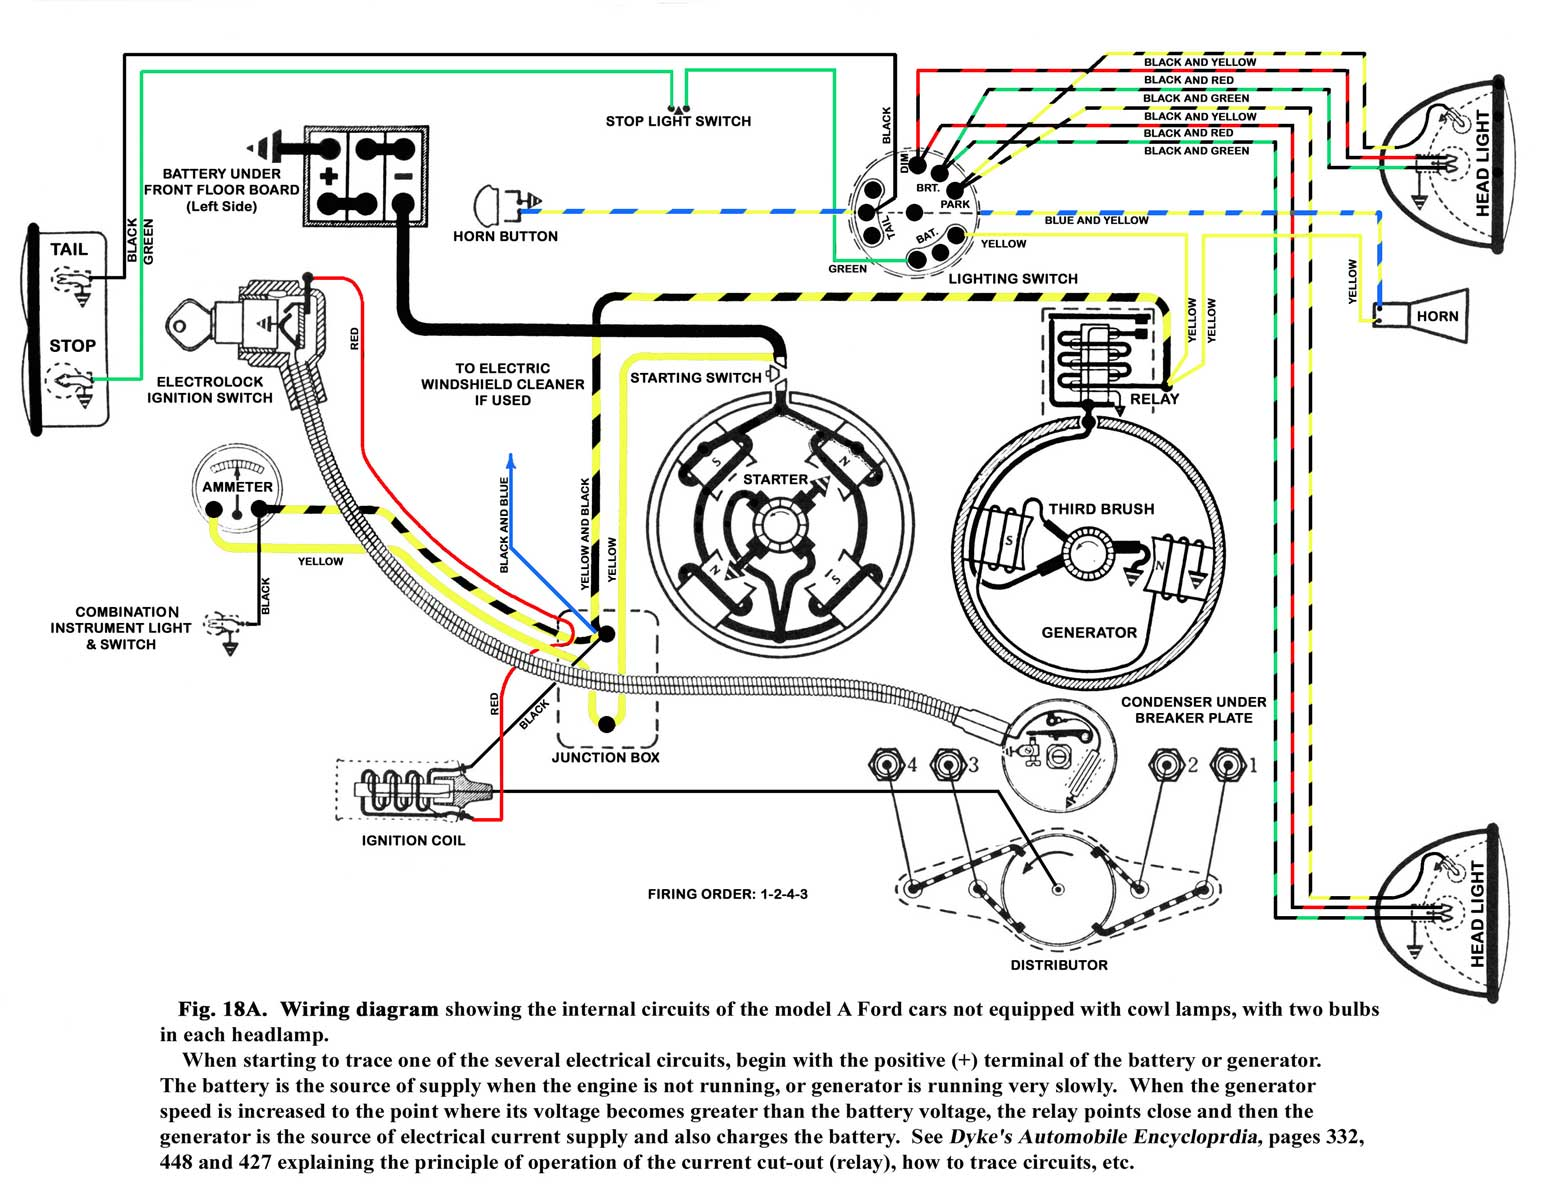 Ford Distributor Wire Diagram 7 | Wiring Diagram